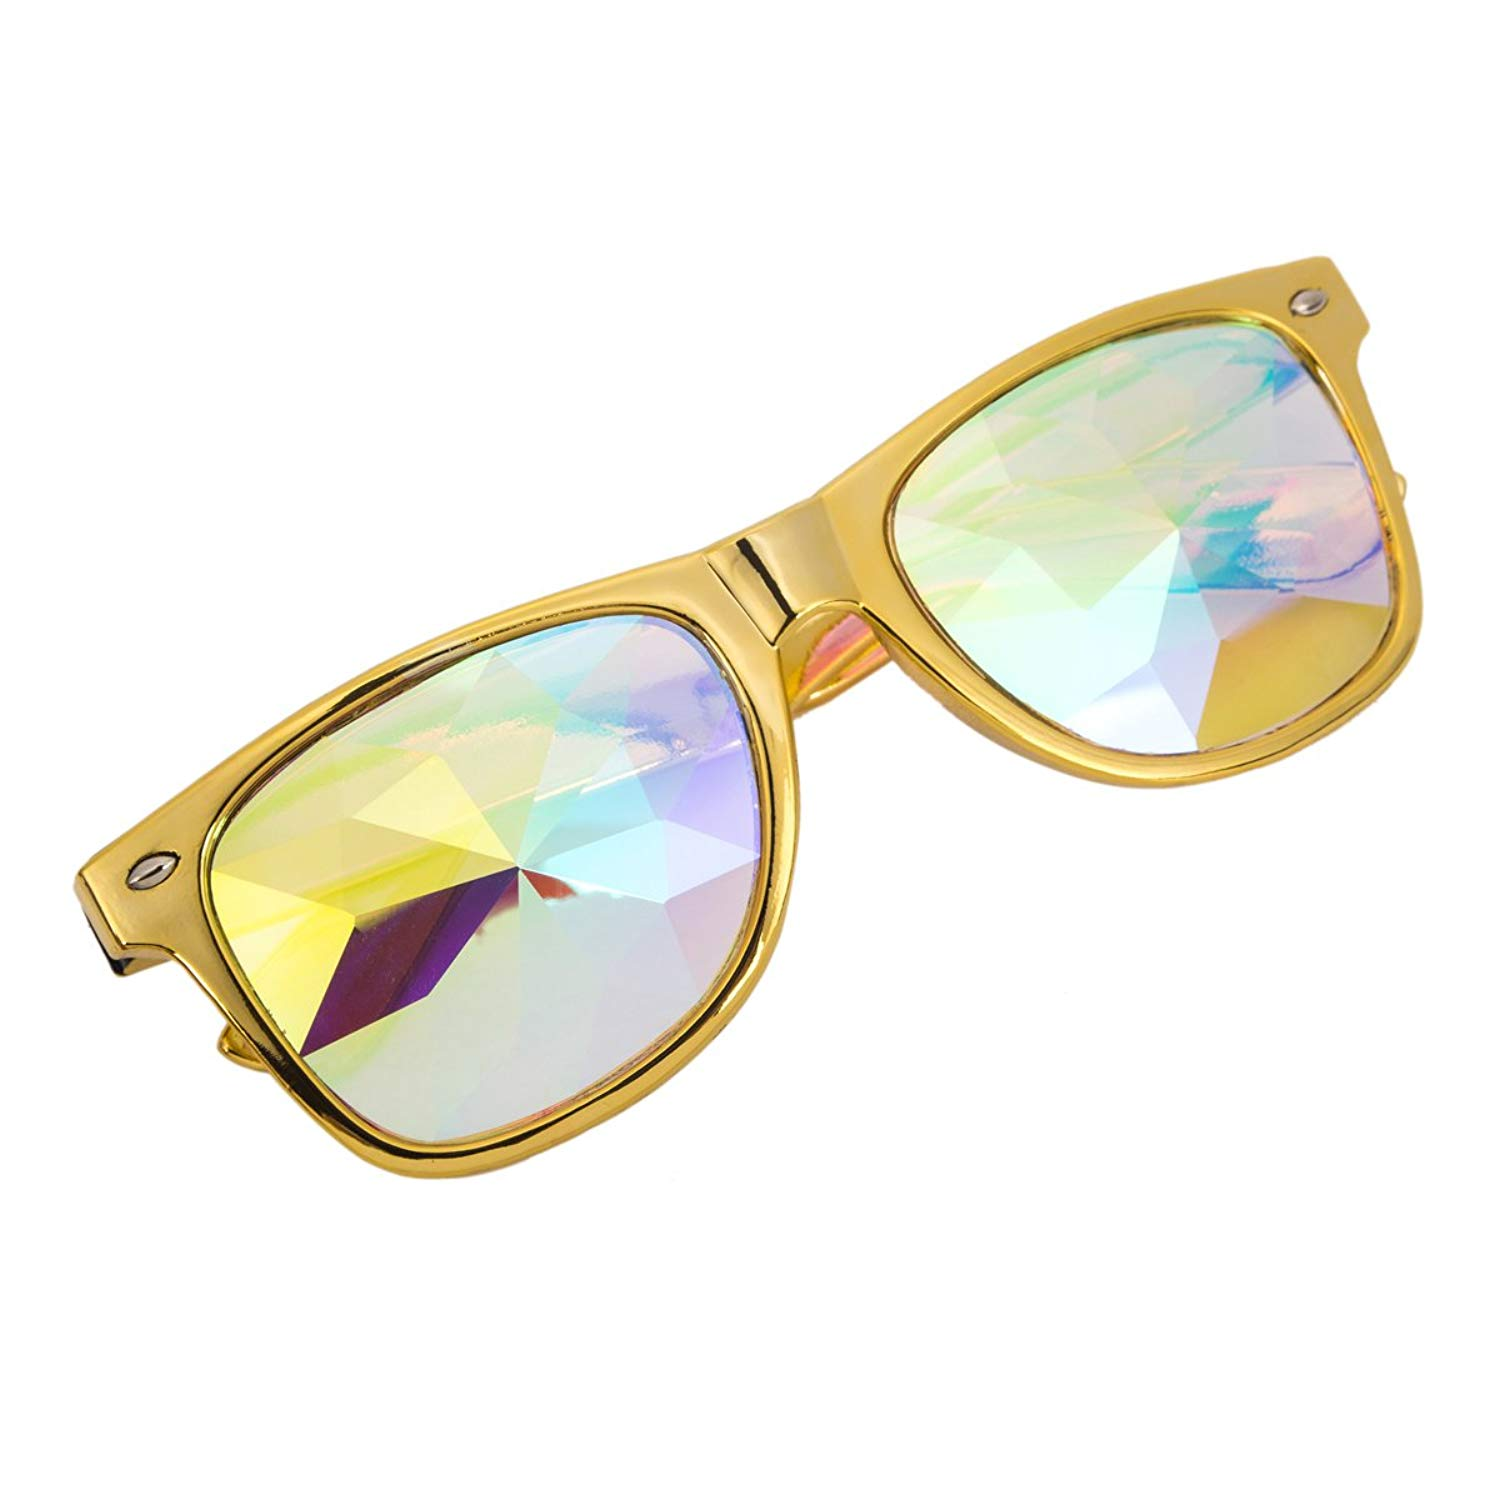 Geometric Prism Rainbow Kaleidoscope Glasses Crystal Prism Diffraction Glasses